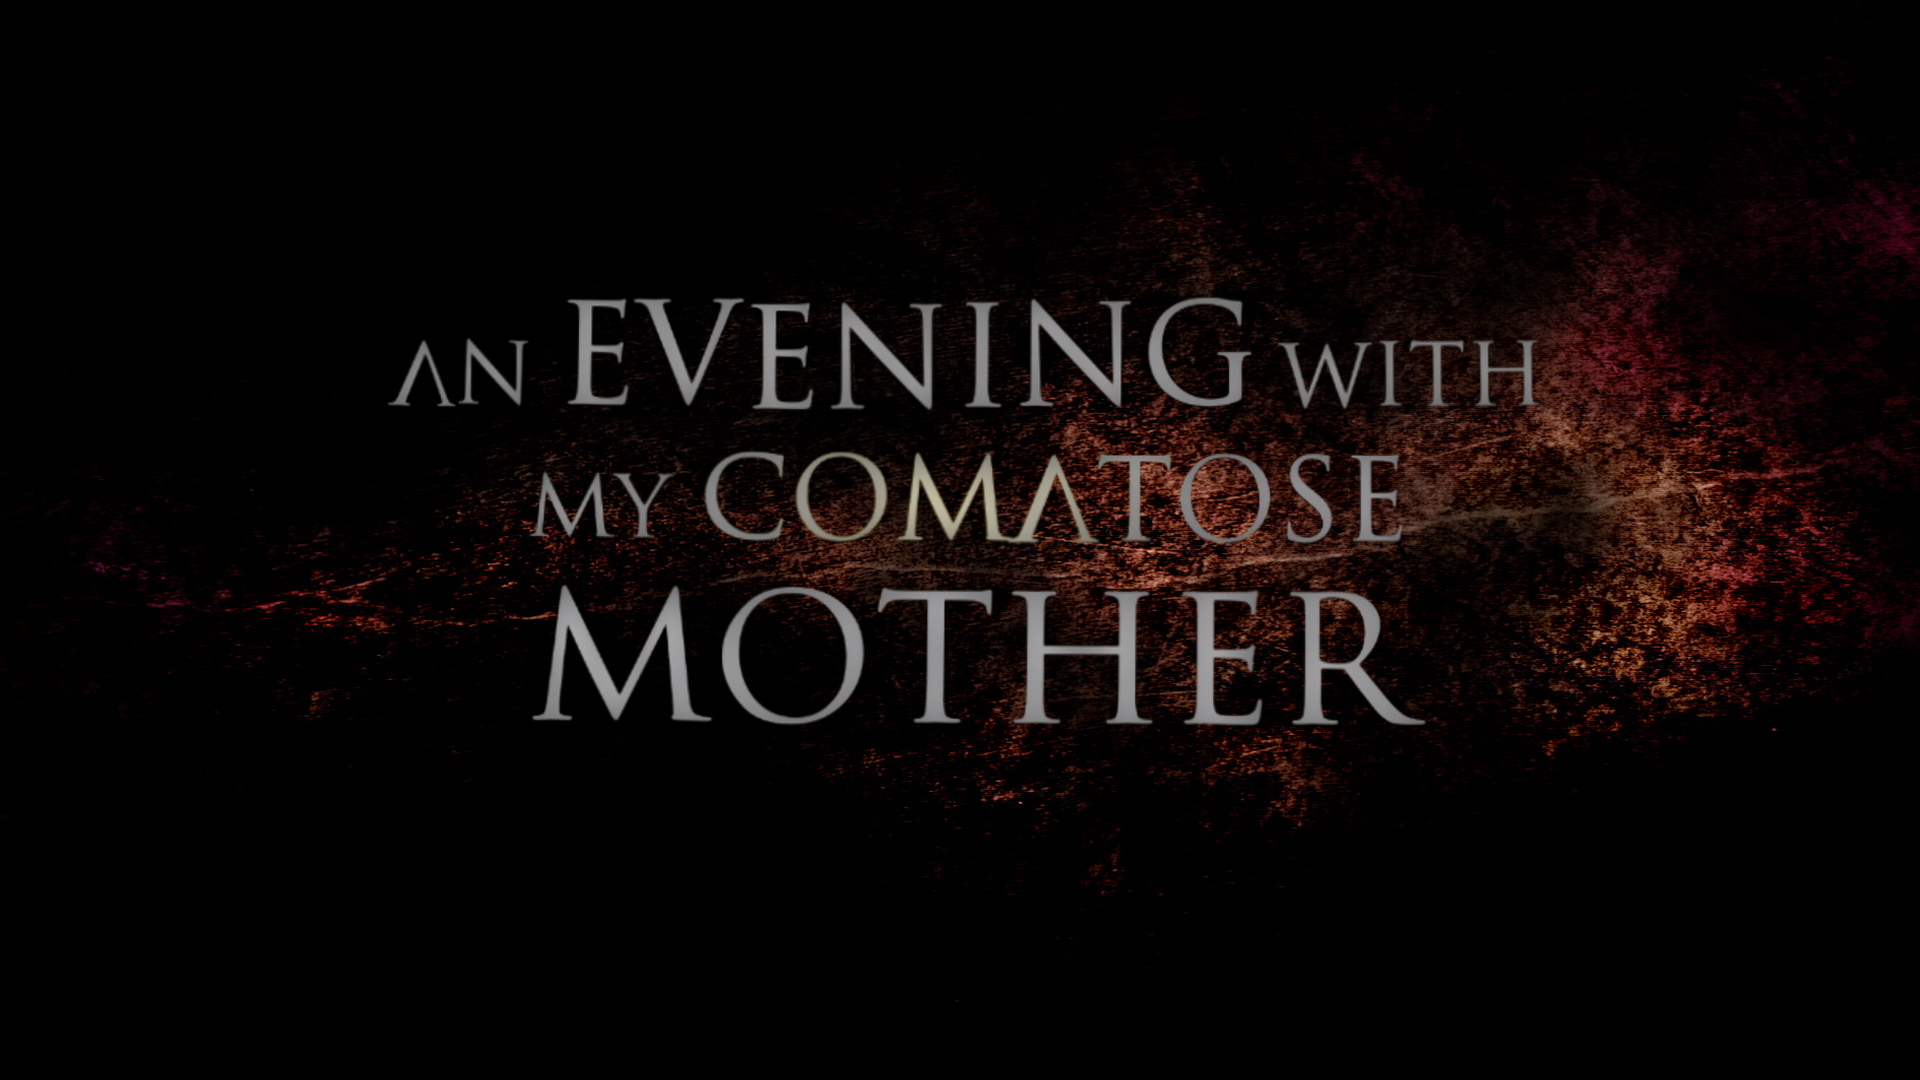 An Evening with My Comatose Mother